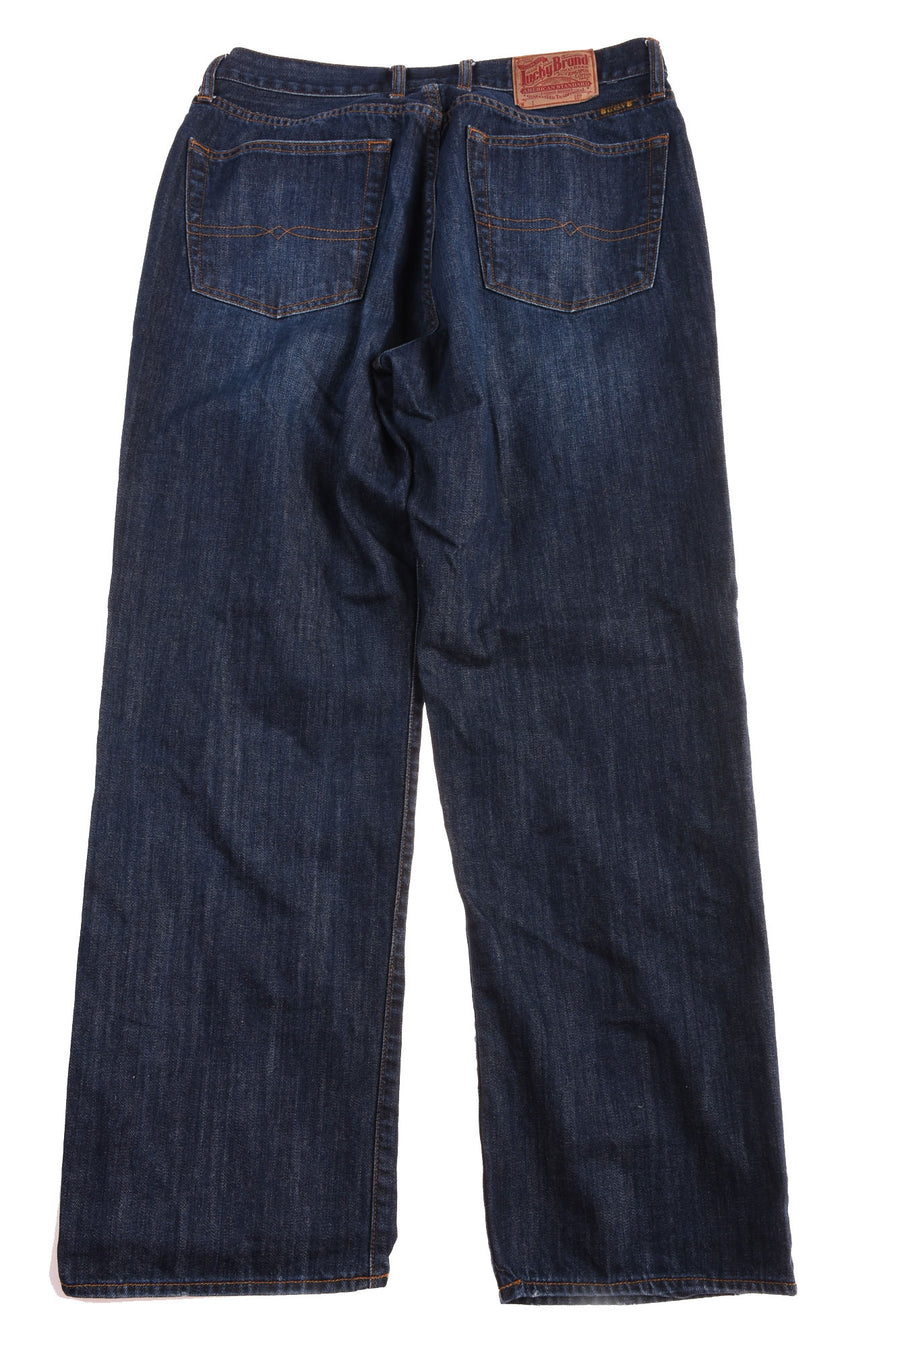 USED Lucky Brand Men's Pants 36 Blue